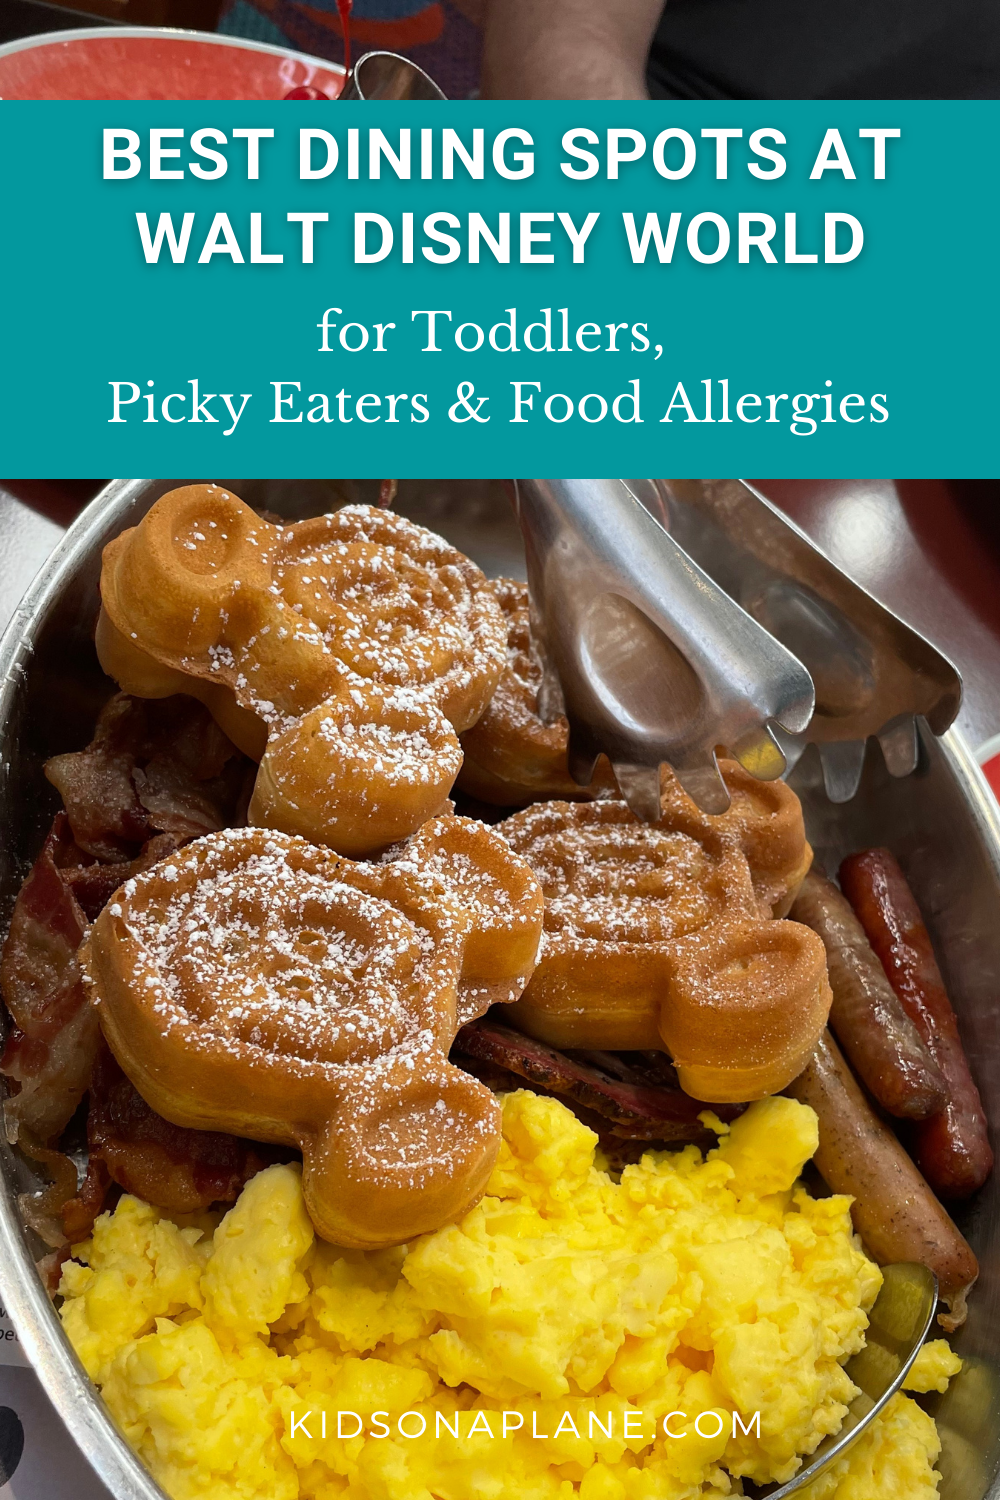 Best Dining Spots at Disney World for Toddlers Picky Eaters and Food Allergies